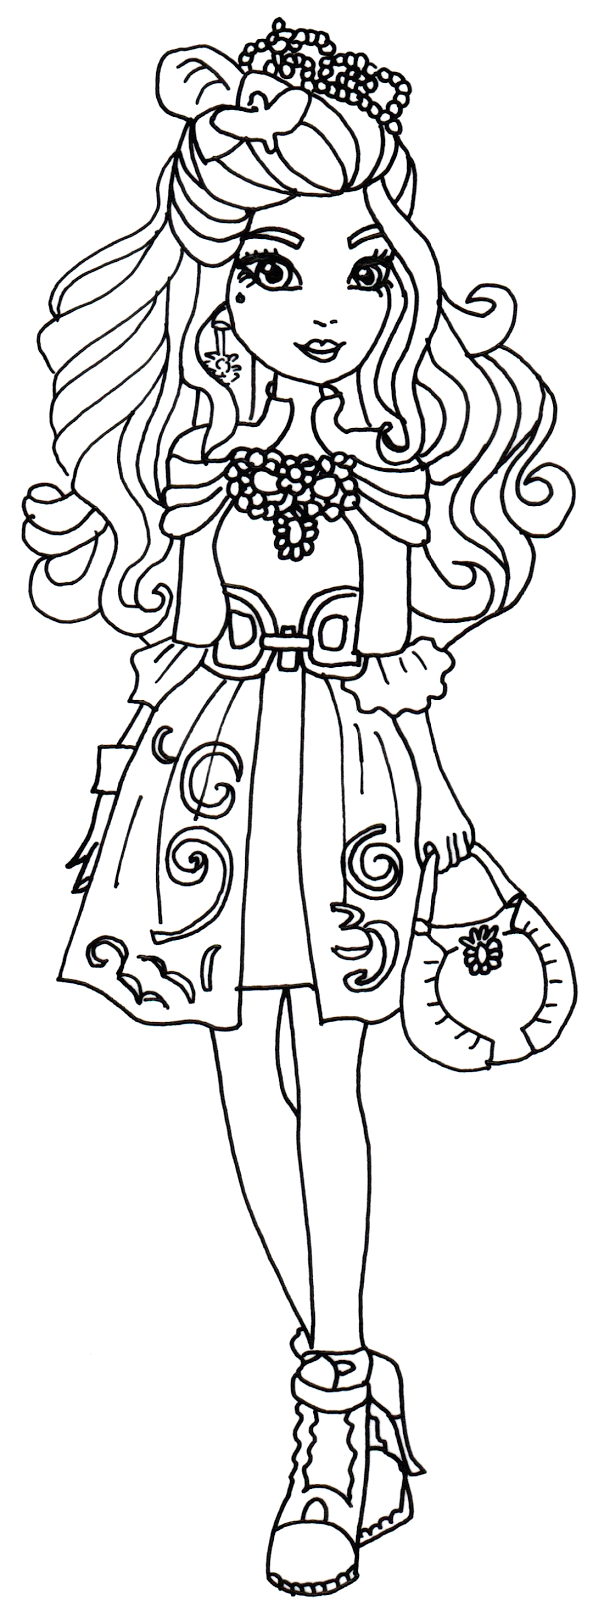 Ever after High Coloring Pages Darling Charming Free Printable Ever after High Coloring Pages Darling